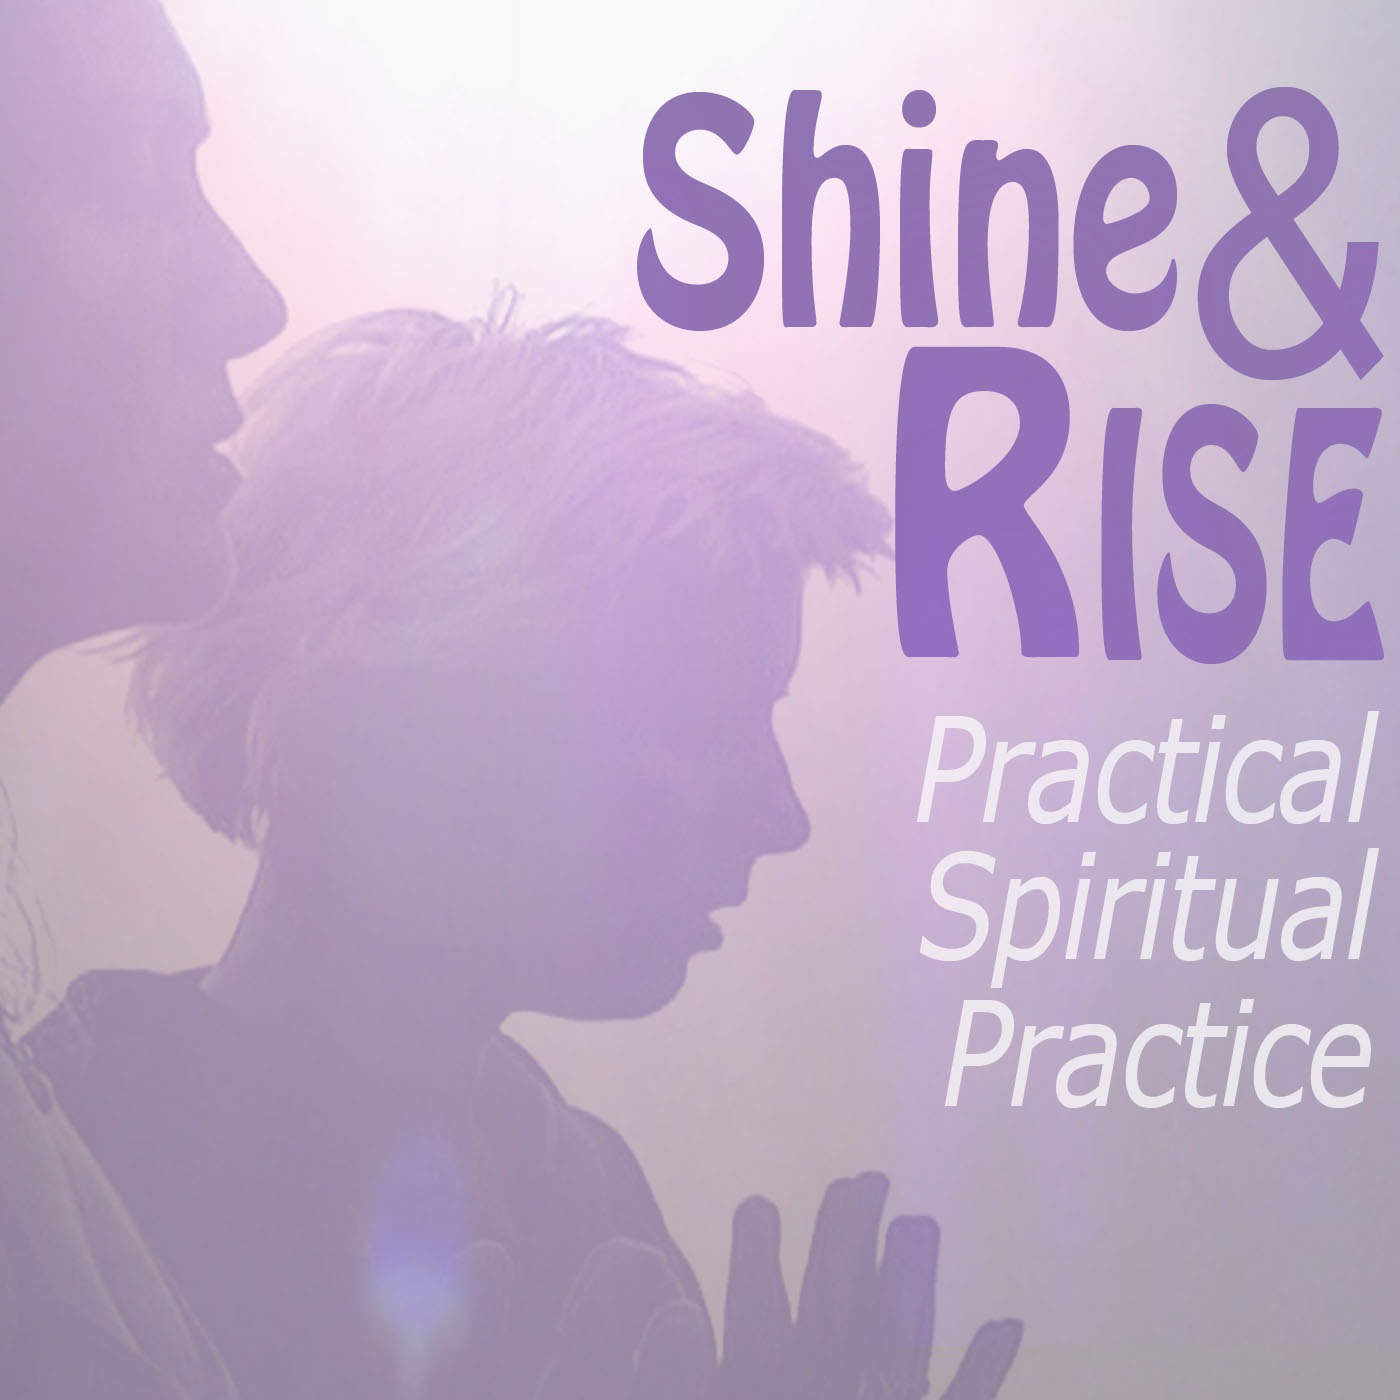 Shine and Rise: A Practical Spiritual Practice with Tyrus Gray